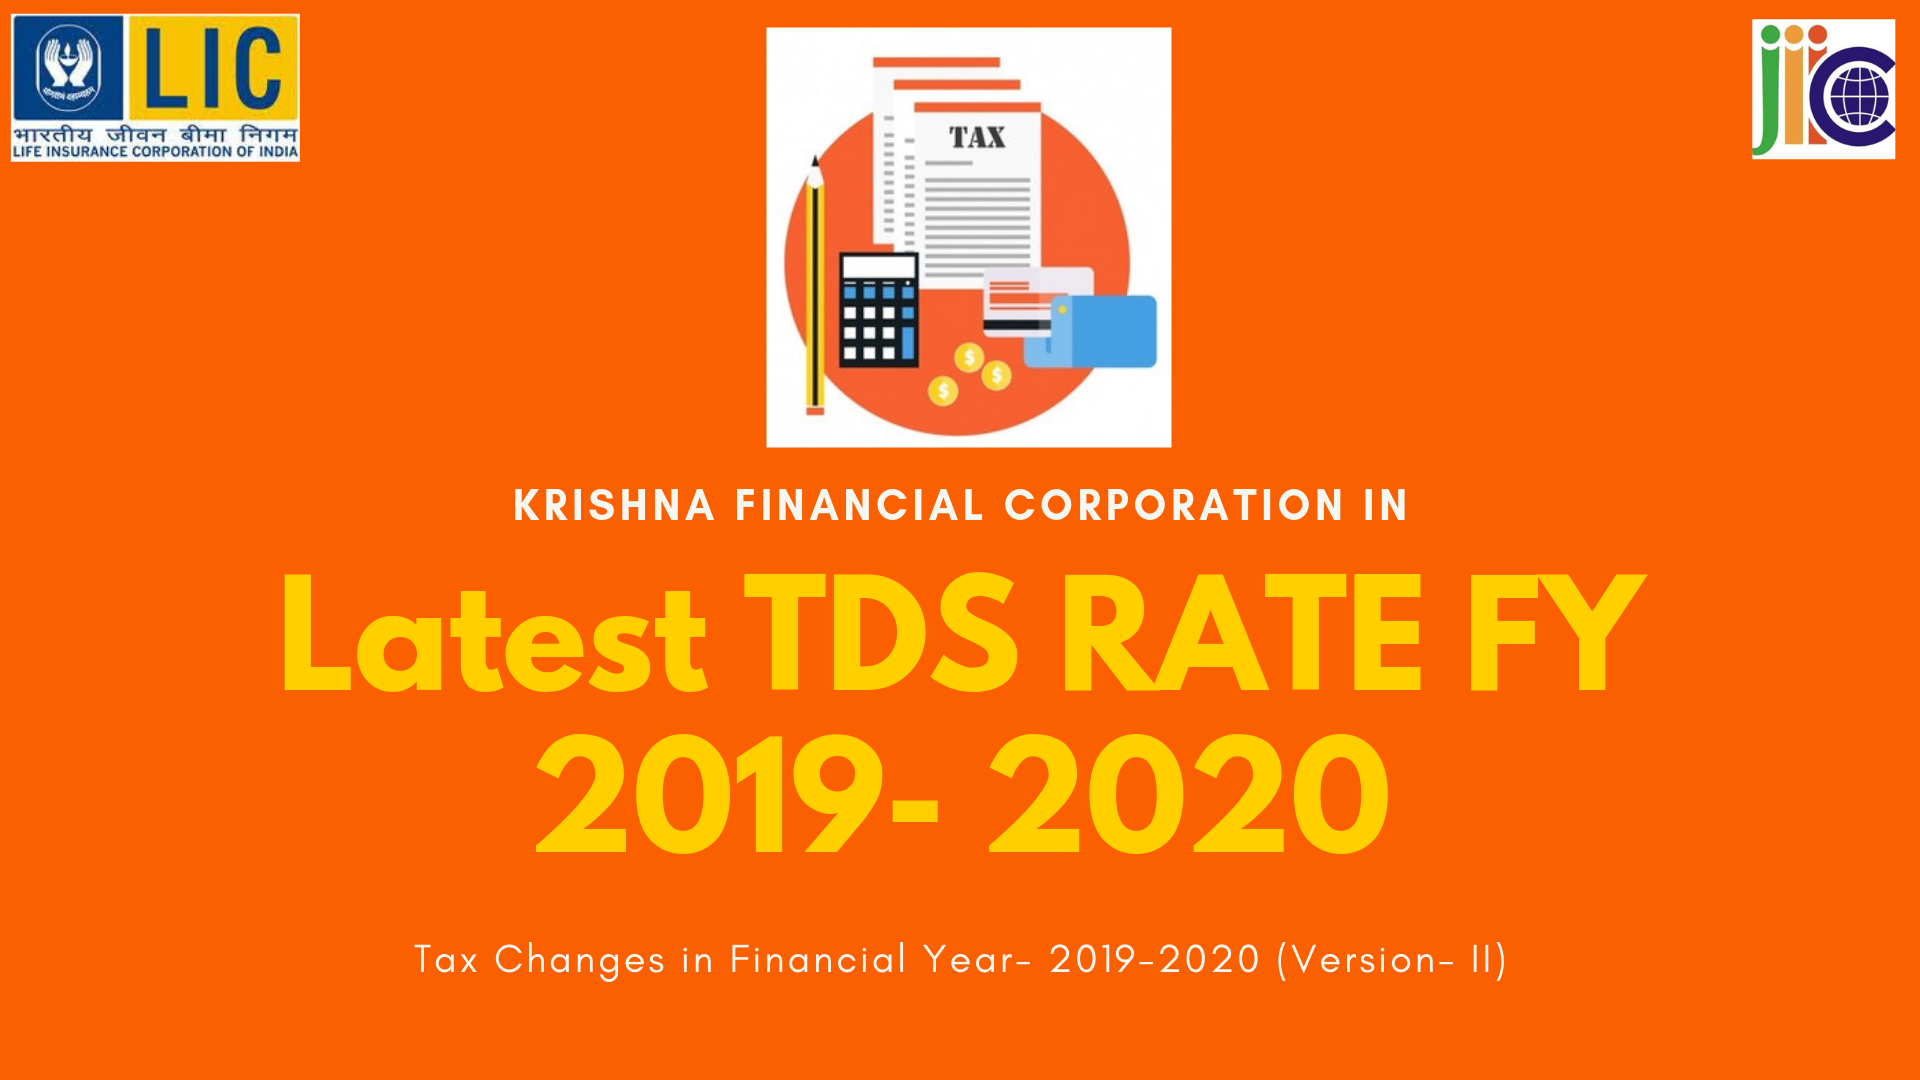 New Tax Changes For 2020.Latest Tds Rate Fy 2019 2020 Krishna Financial Corporation